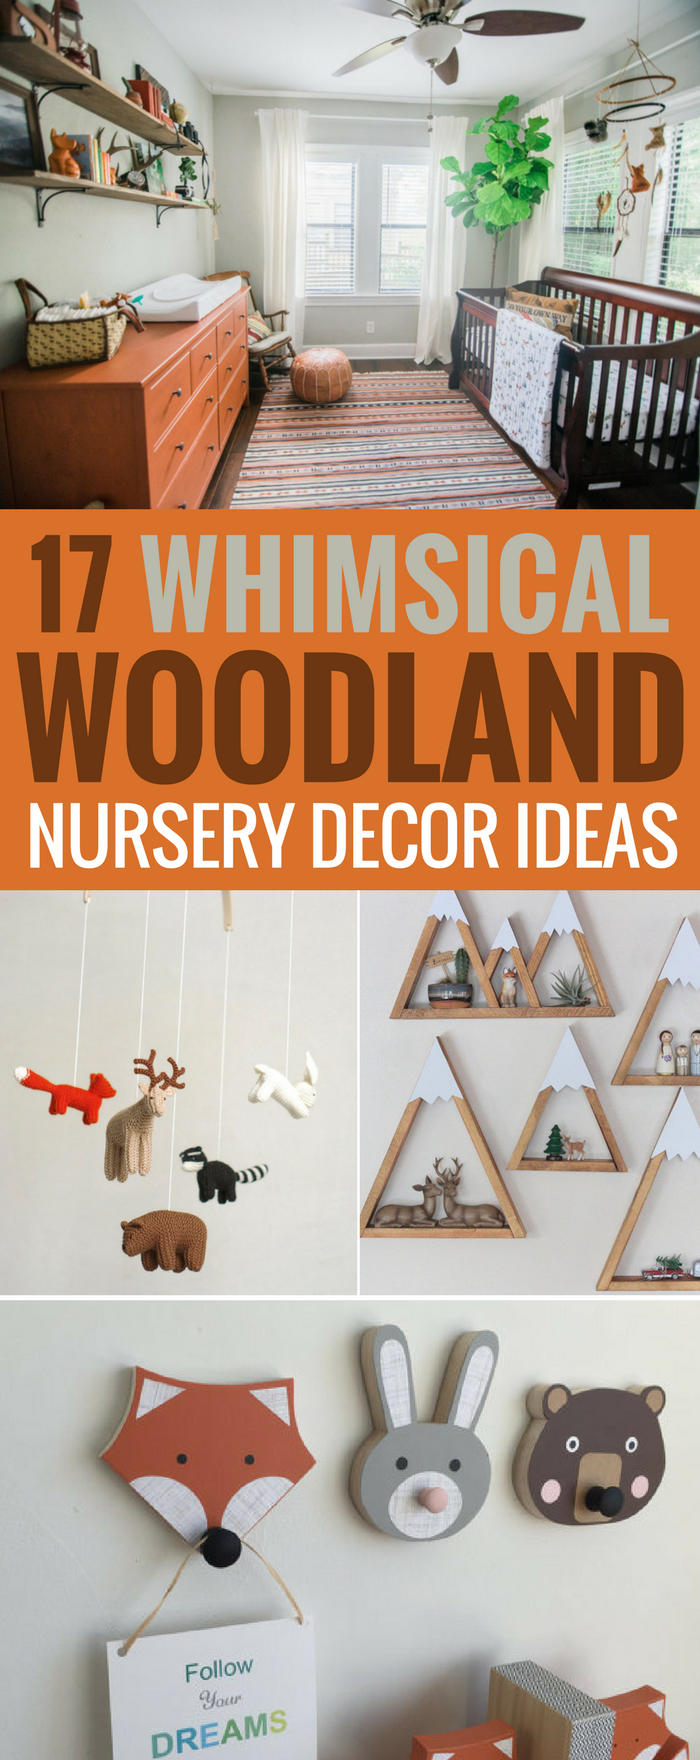 17 Decor Ideas For A Whimsical Woodland Nursery